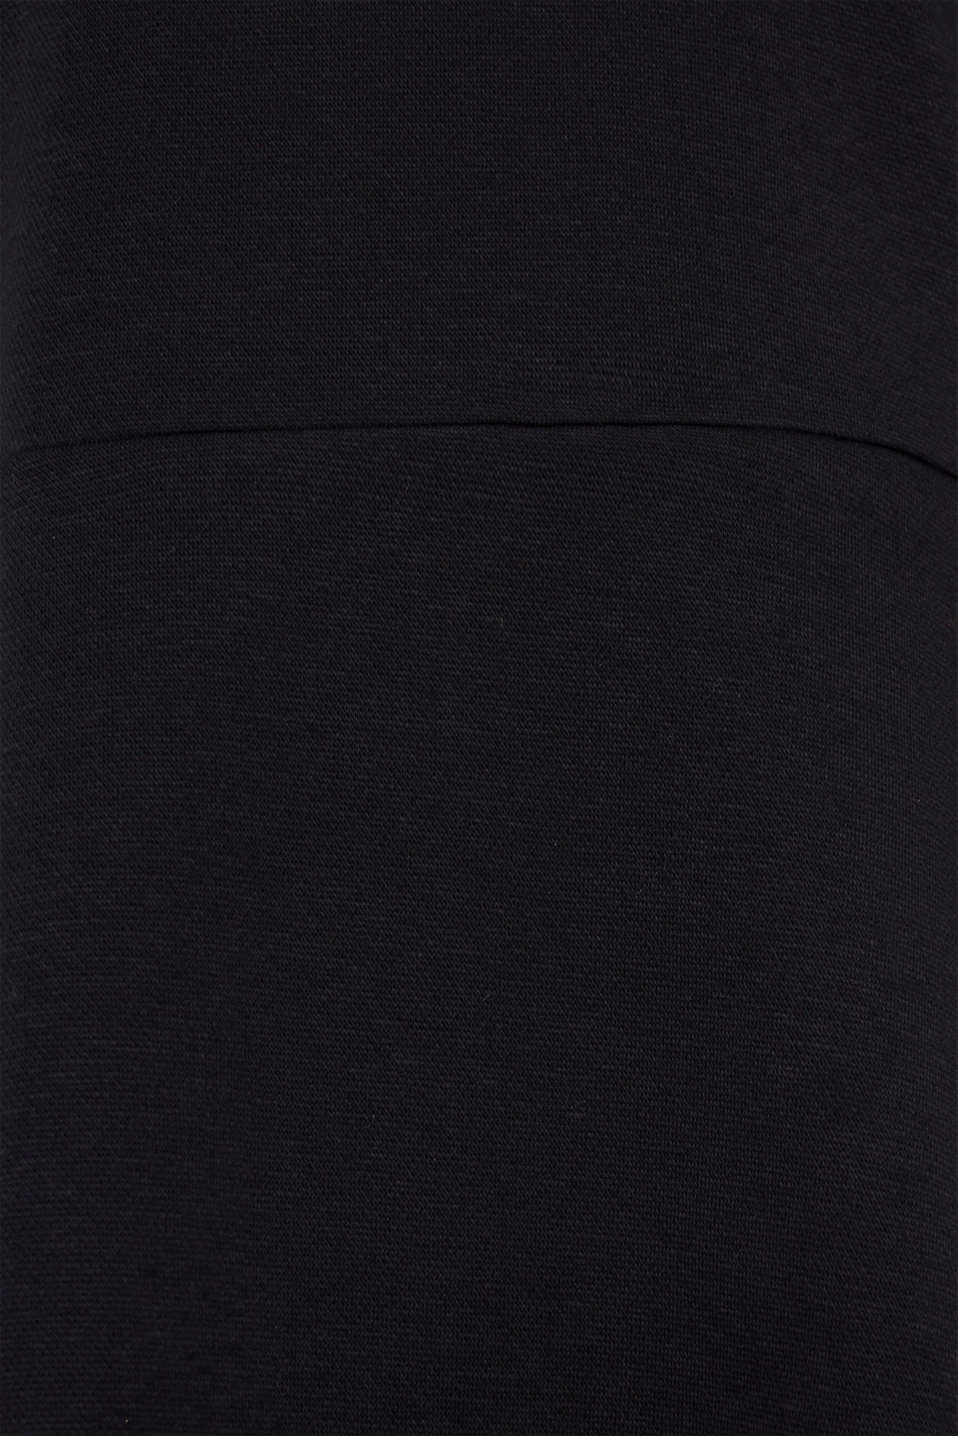 Textured stretch jersey dress, BLACK, detail image number 4